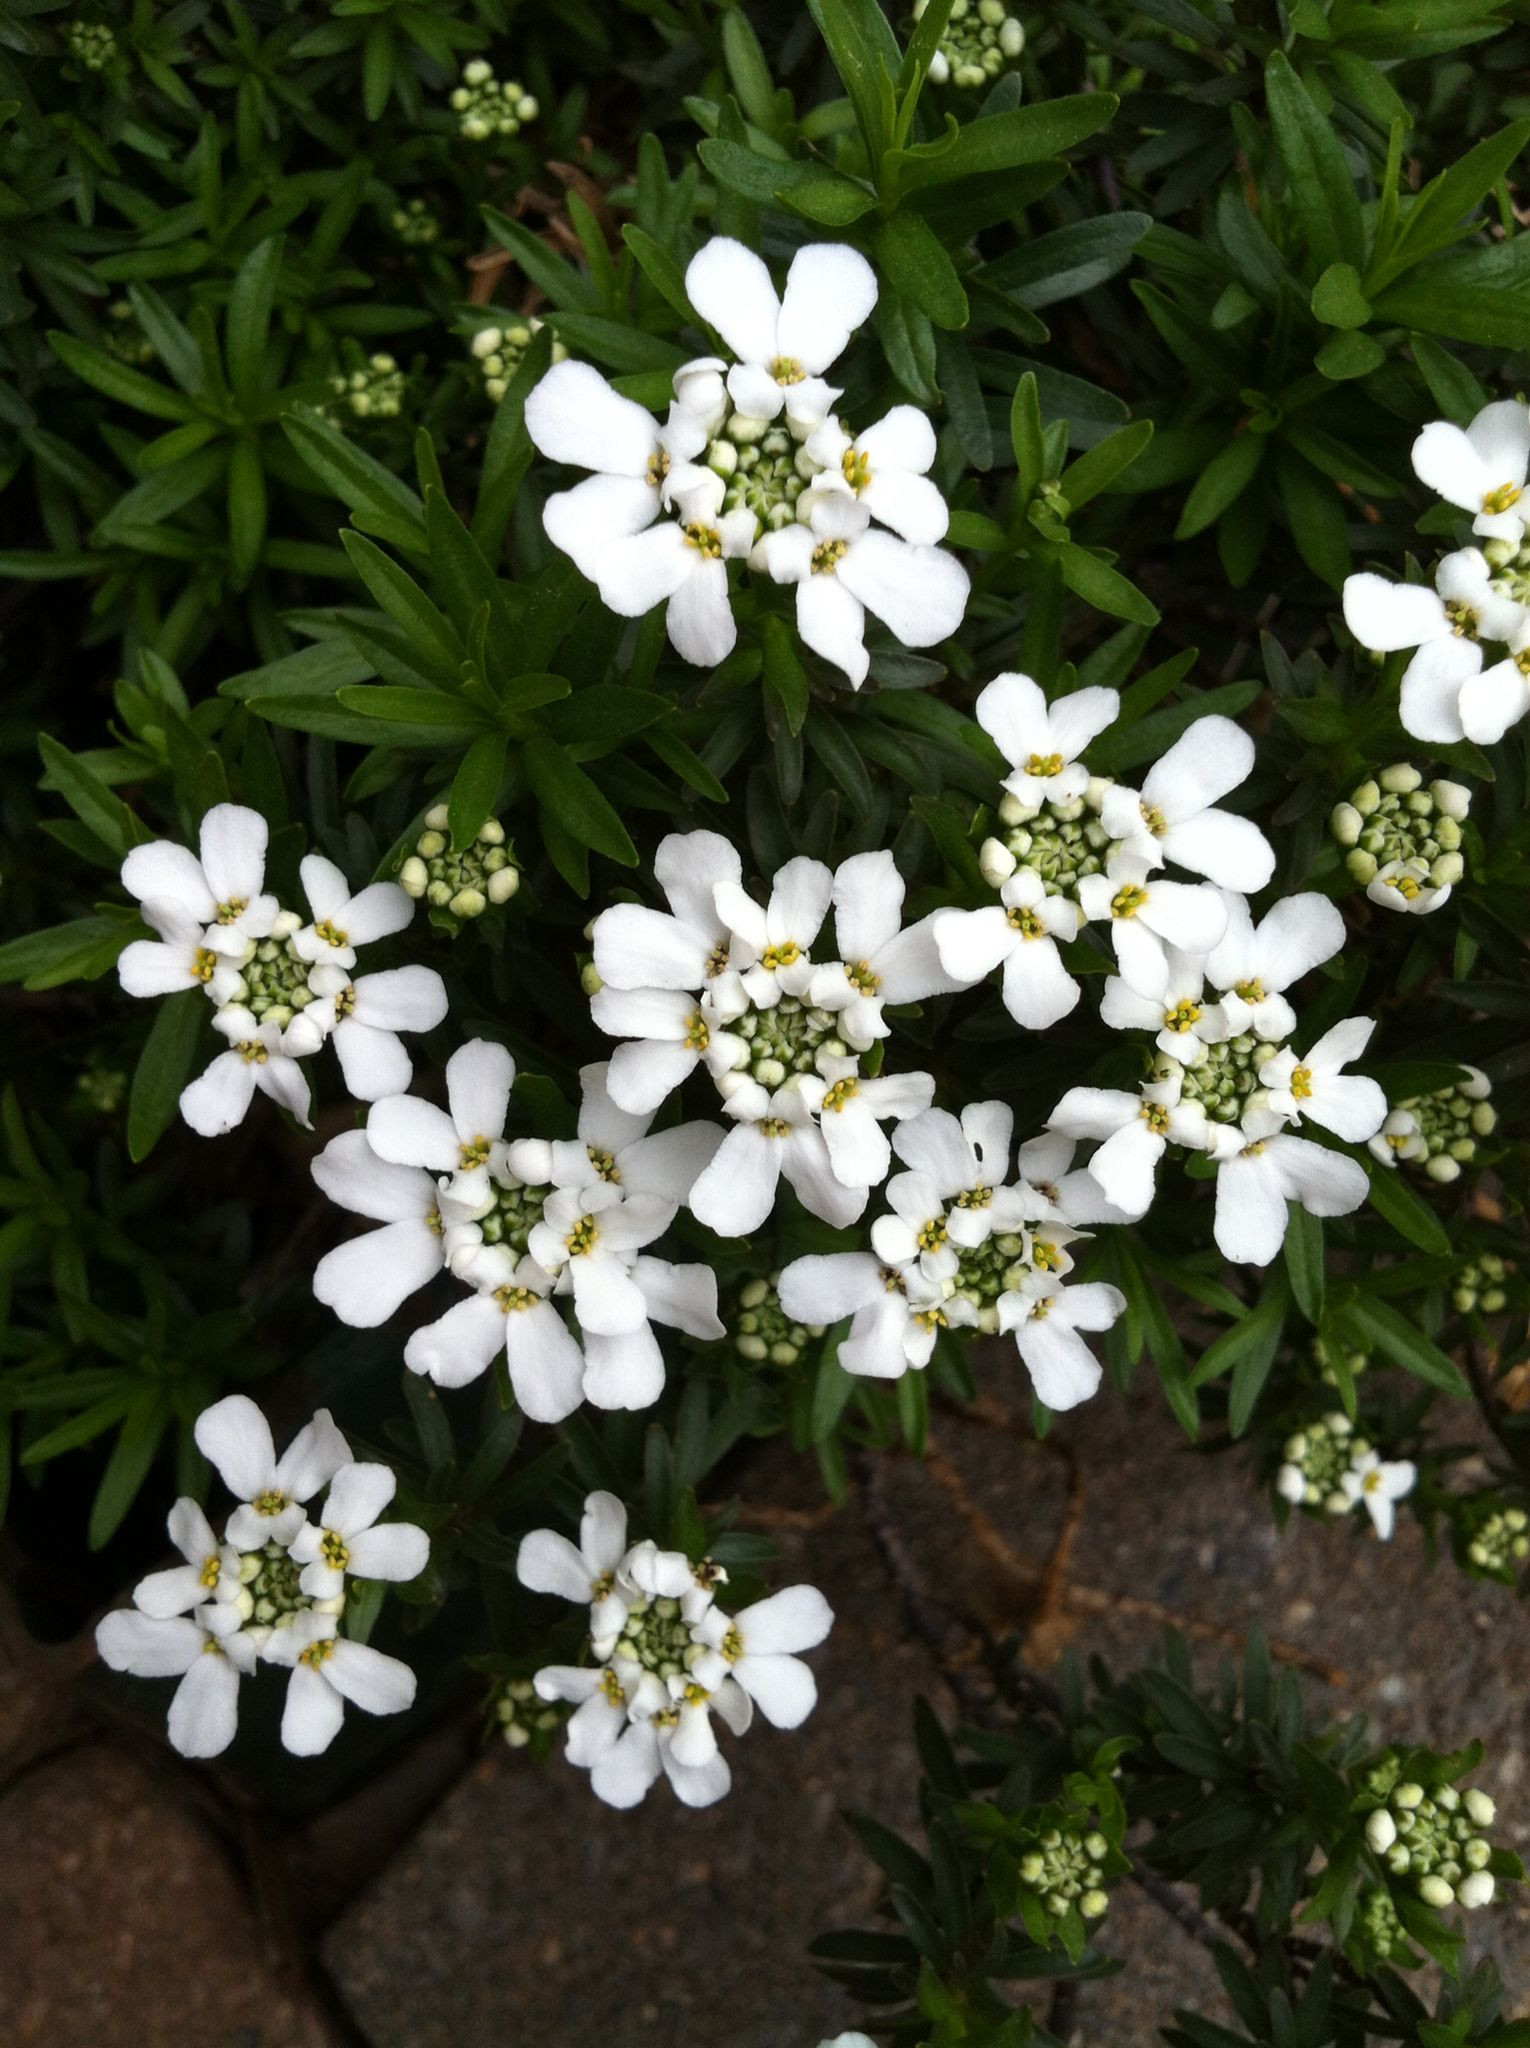 White candytuft